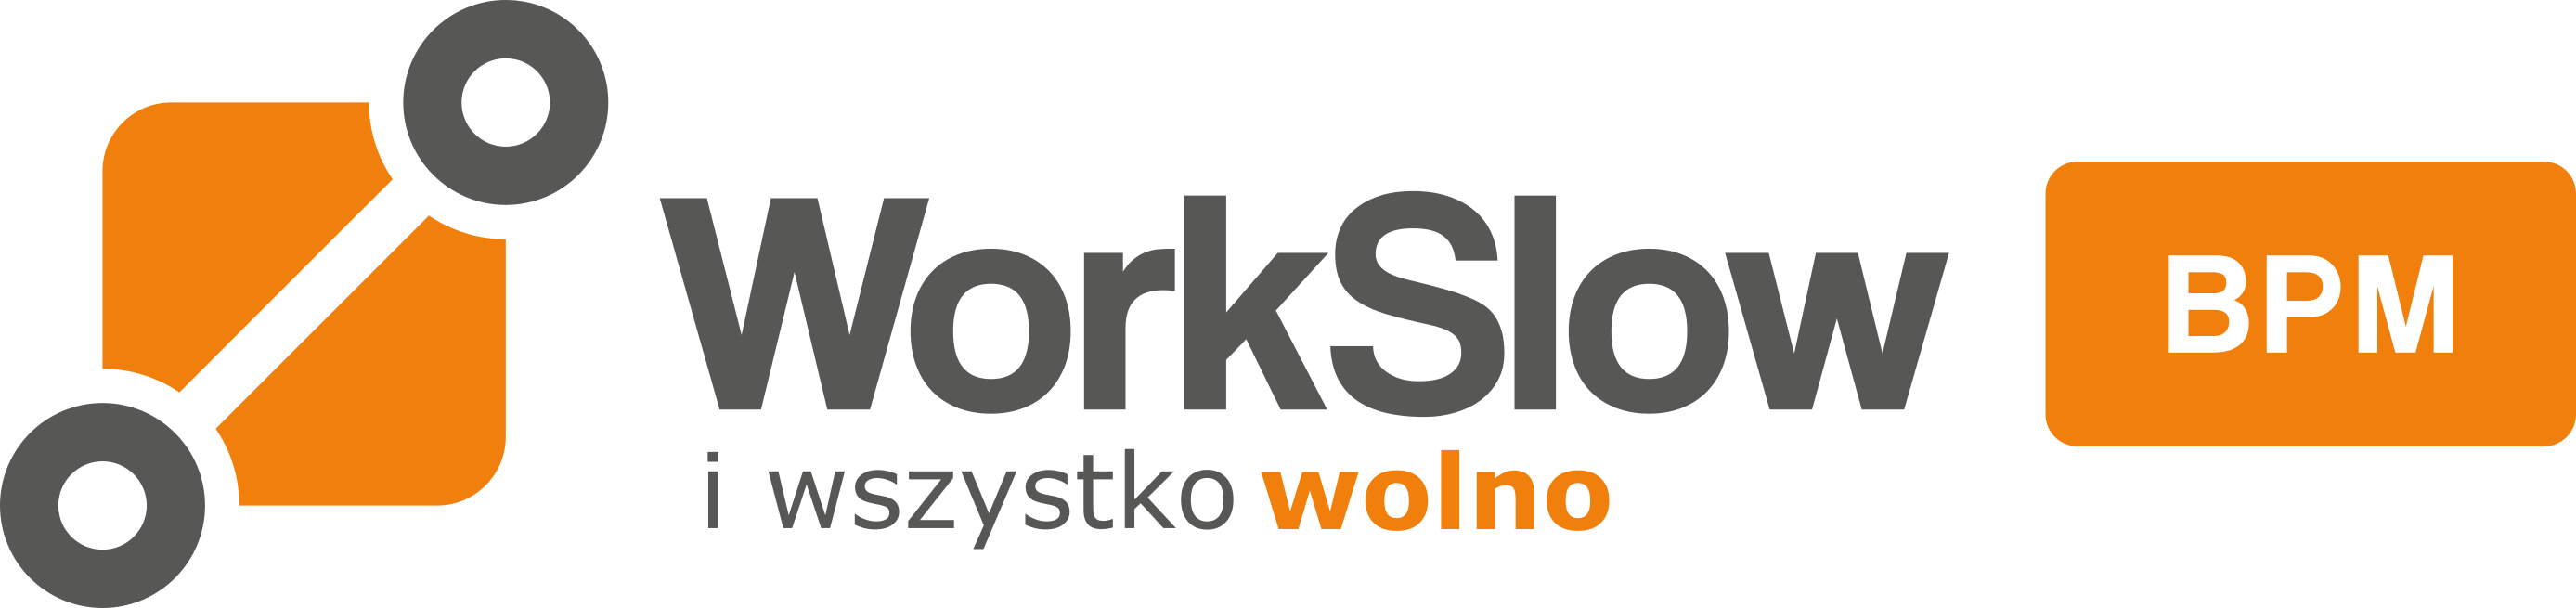 Logo WorkSlow BPM